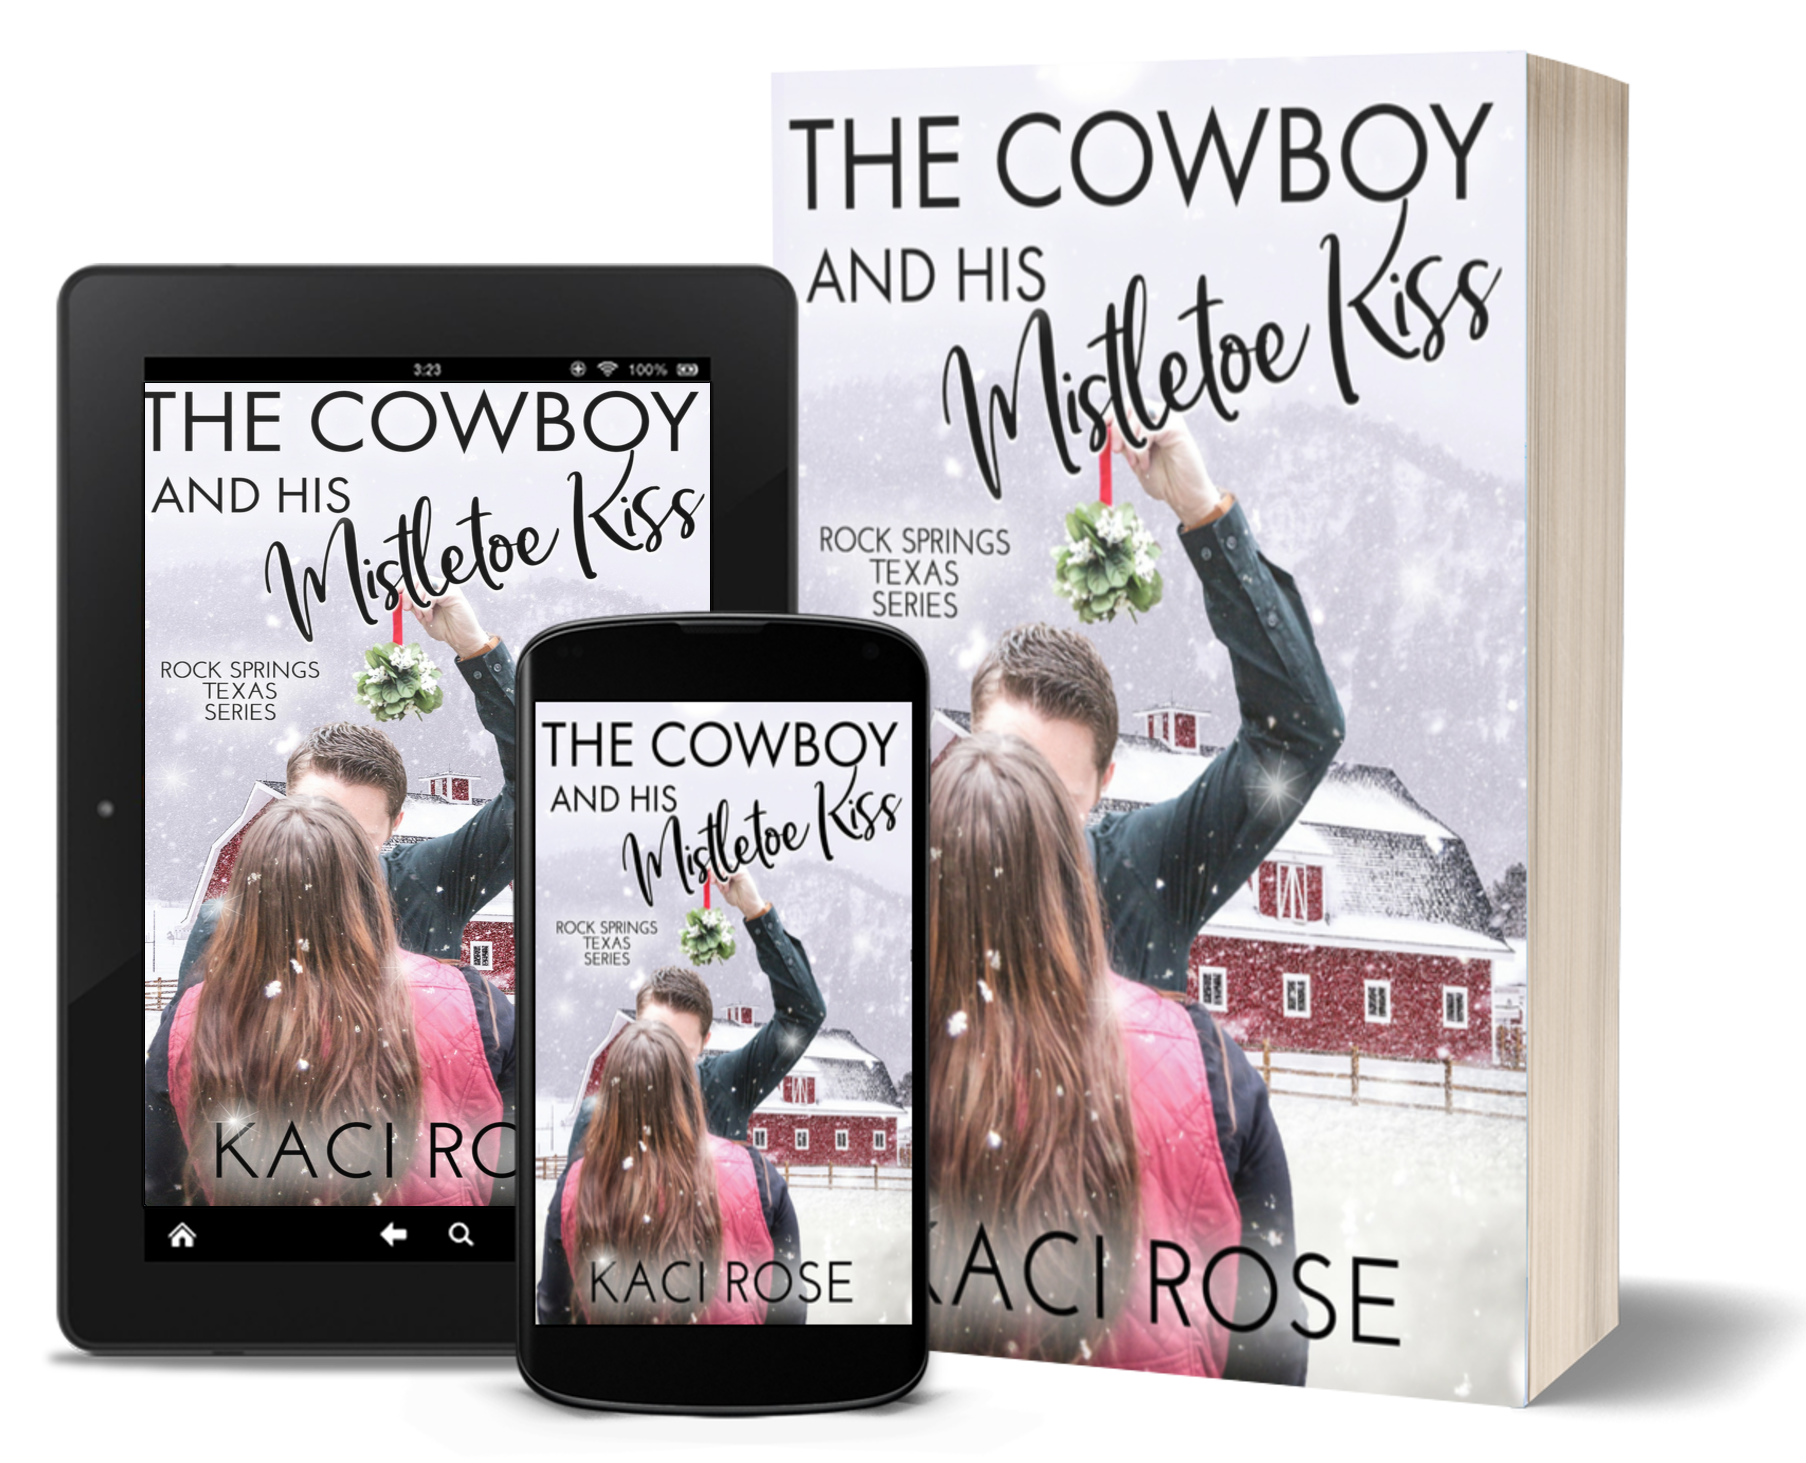 The Cowboy and His Mistletoe Kiss - 3D covers